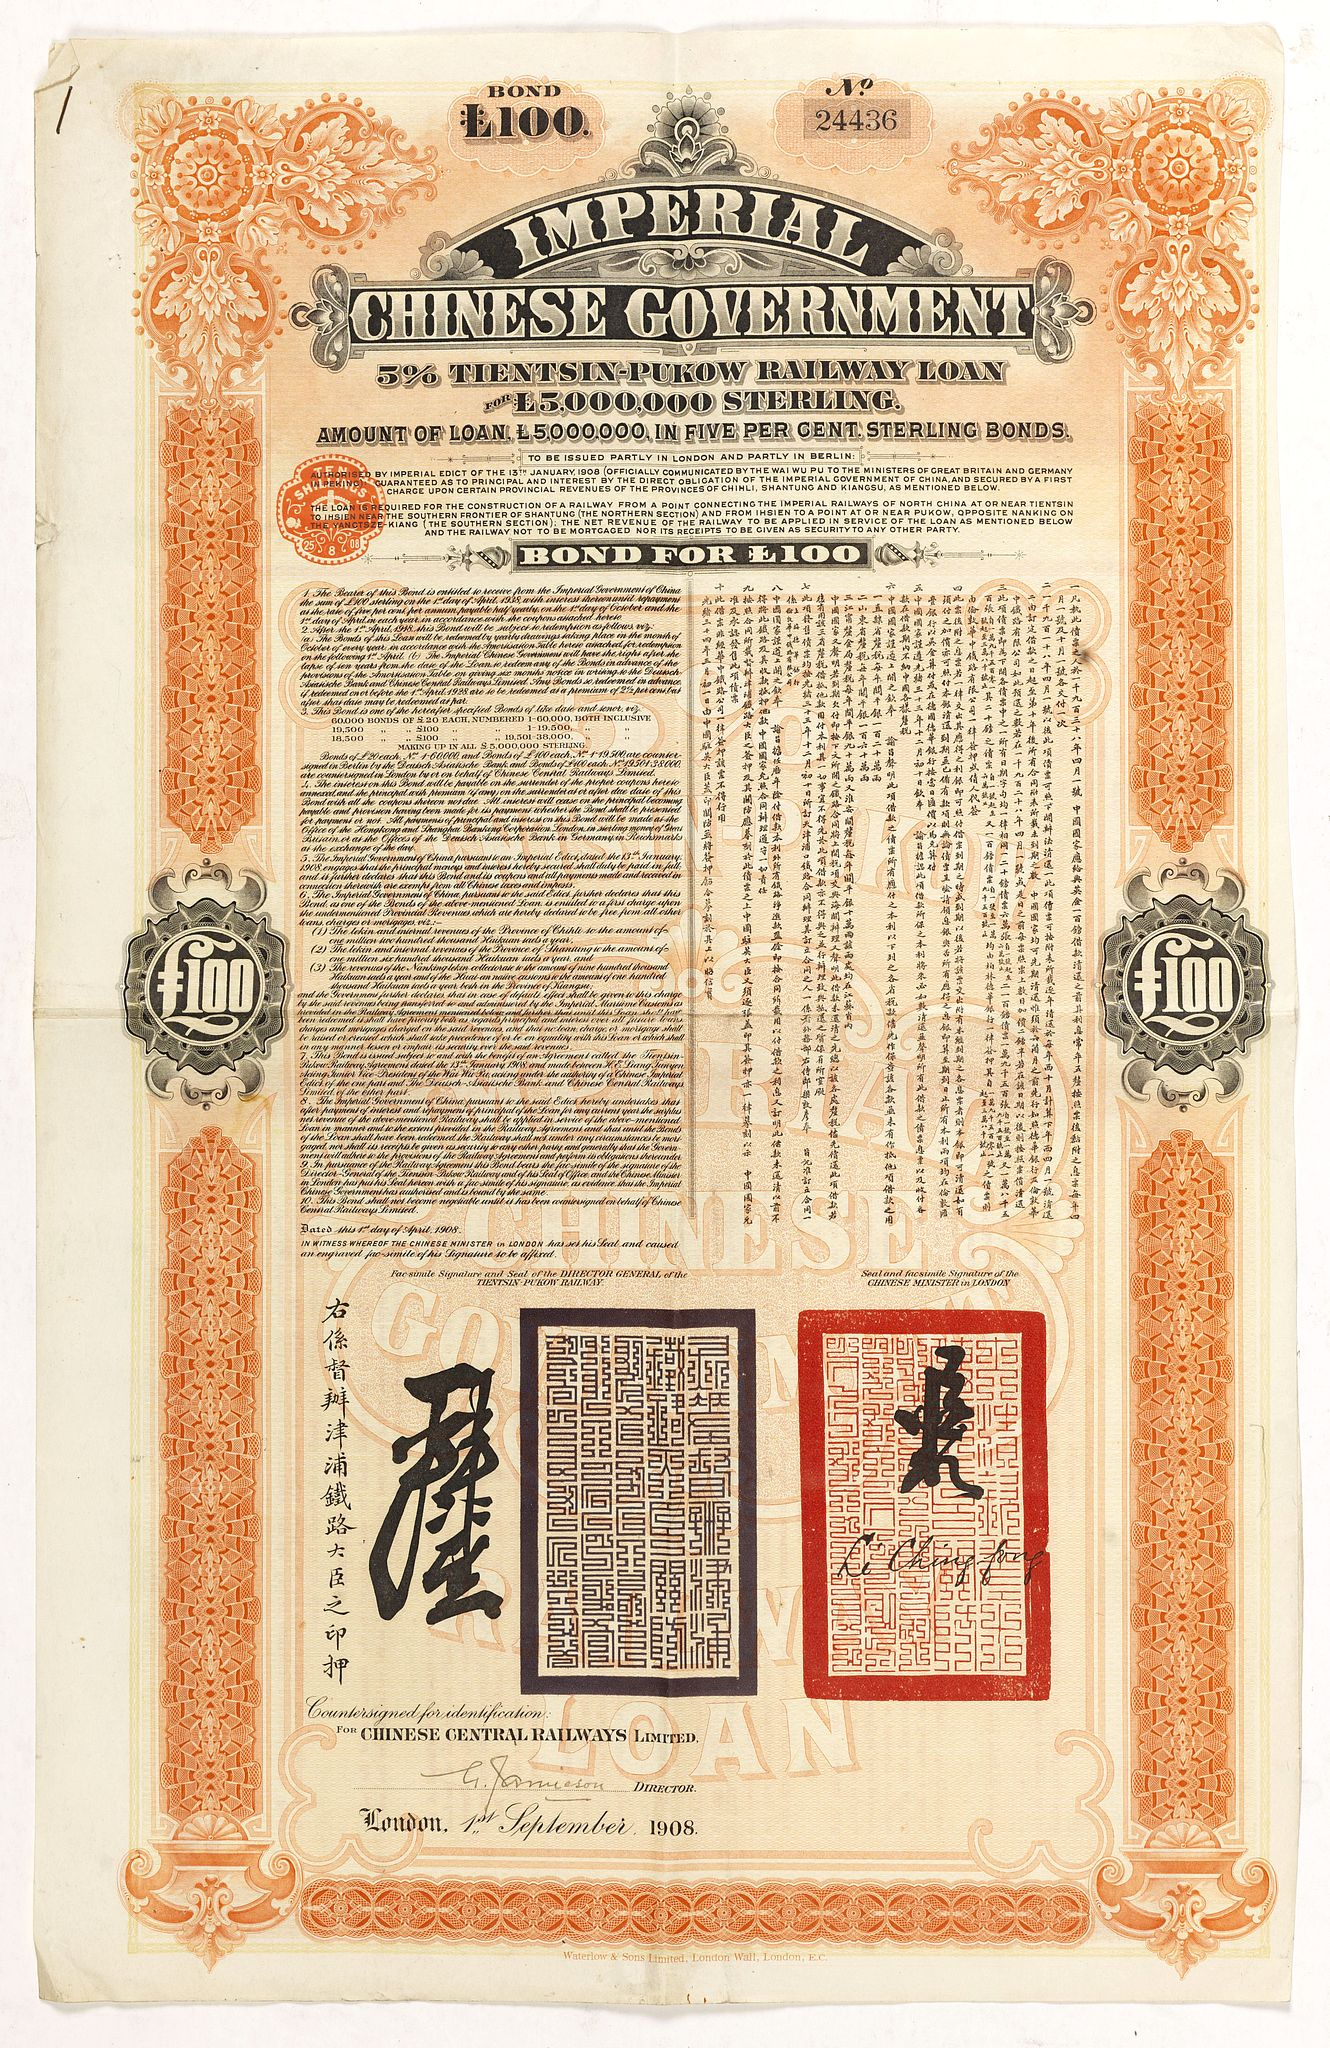 IMPERIAL CHINESE GOVERNMENT,  £100 Imperial Chinese Government 5% Tientsin-Pukow Railway Loan . . ., antique map, old maps